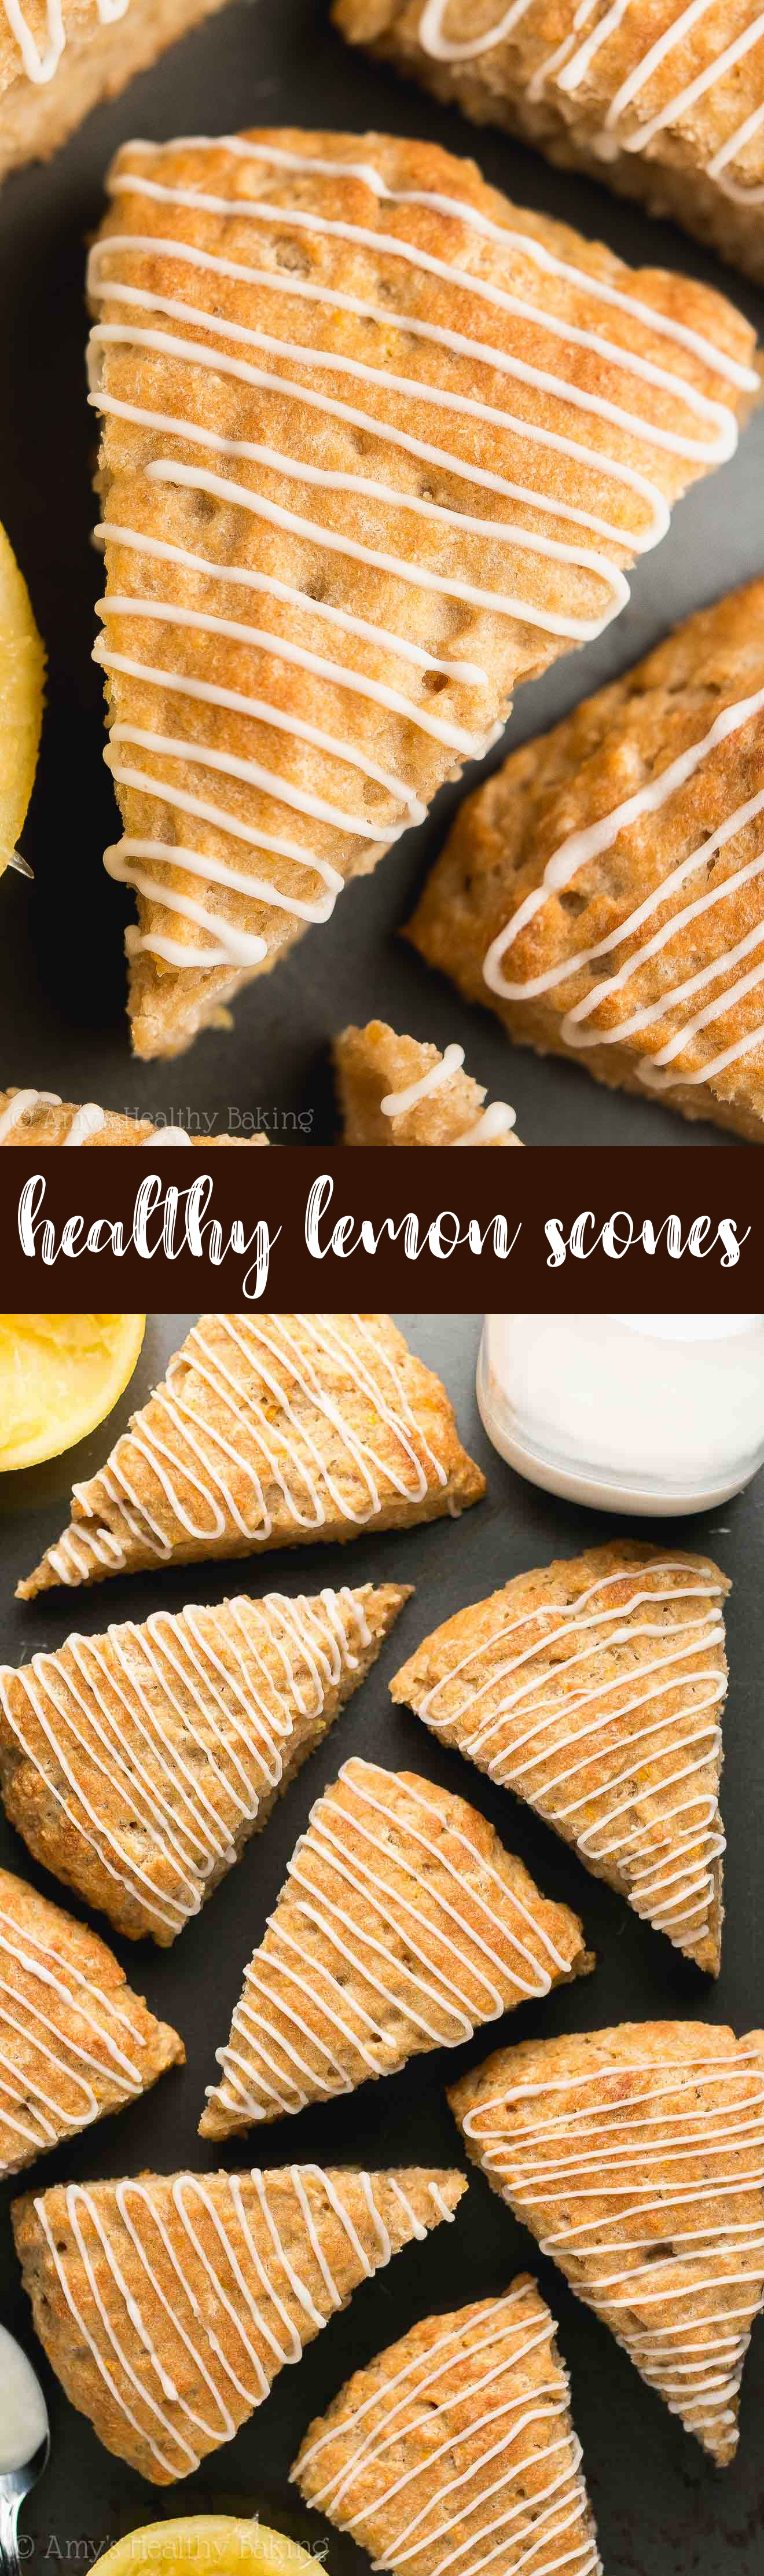 The Best Clean Eating Healthy Lemon Scones with Lemon Glaze